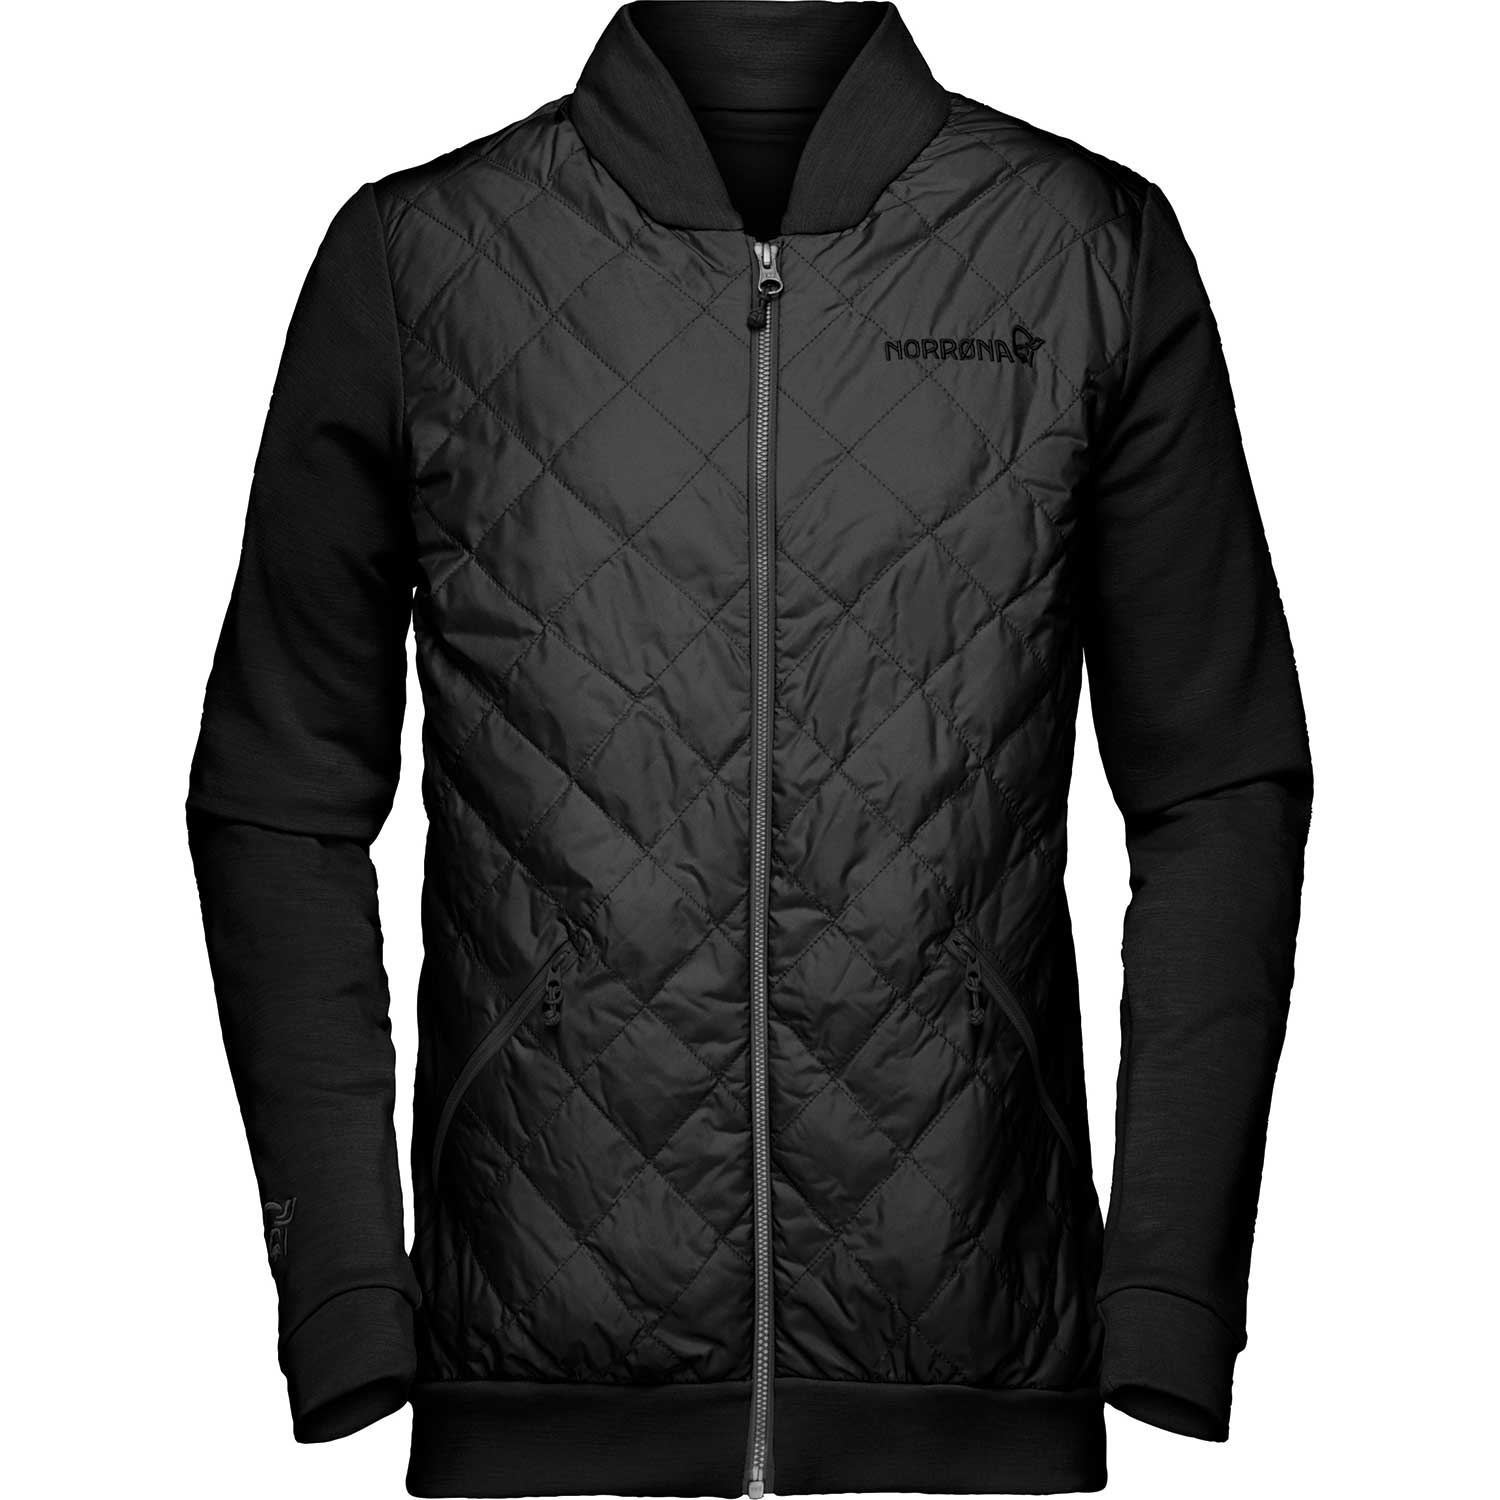 røldal warmwool1 Jacket (W)